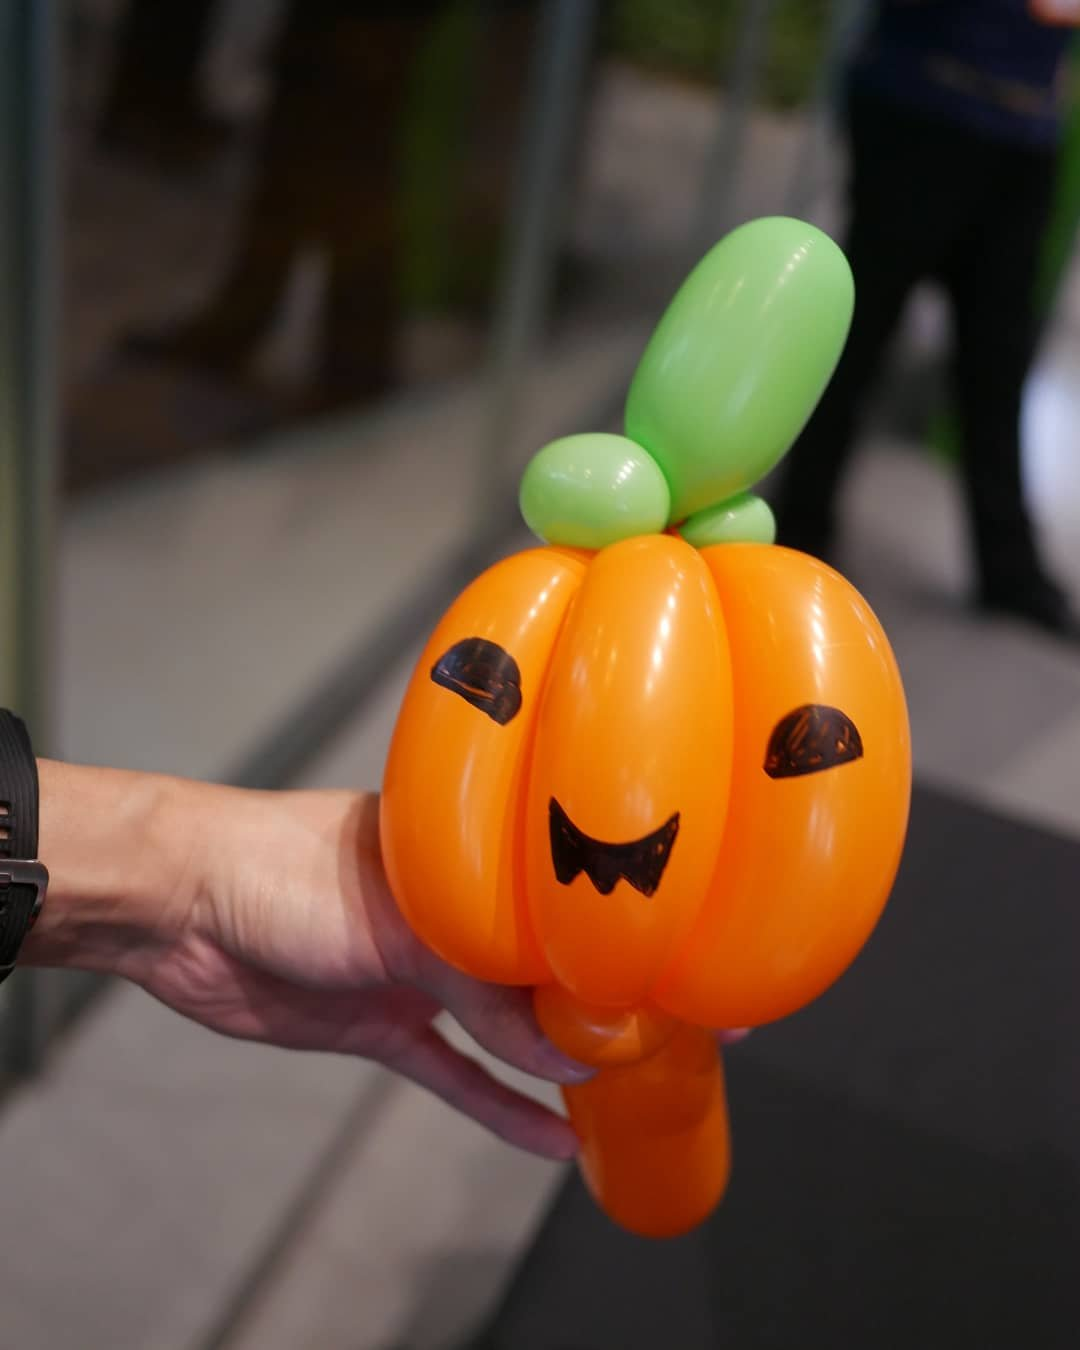 , Halloween Balloon Sculpting for Mapletree Business Park!, Singapore Balloon Decoration Services - Balloon Workshop and Balloon Sculpting